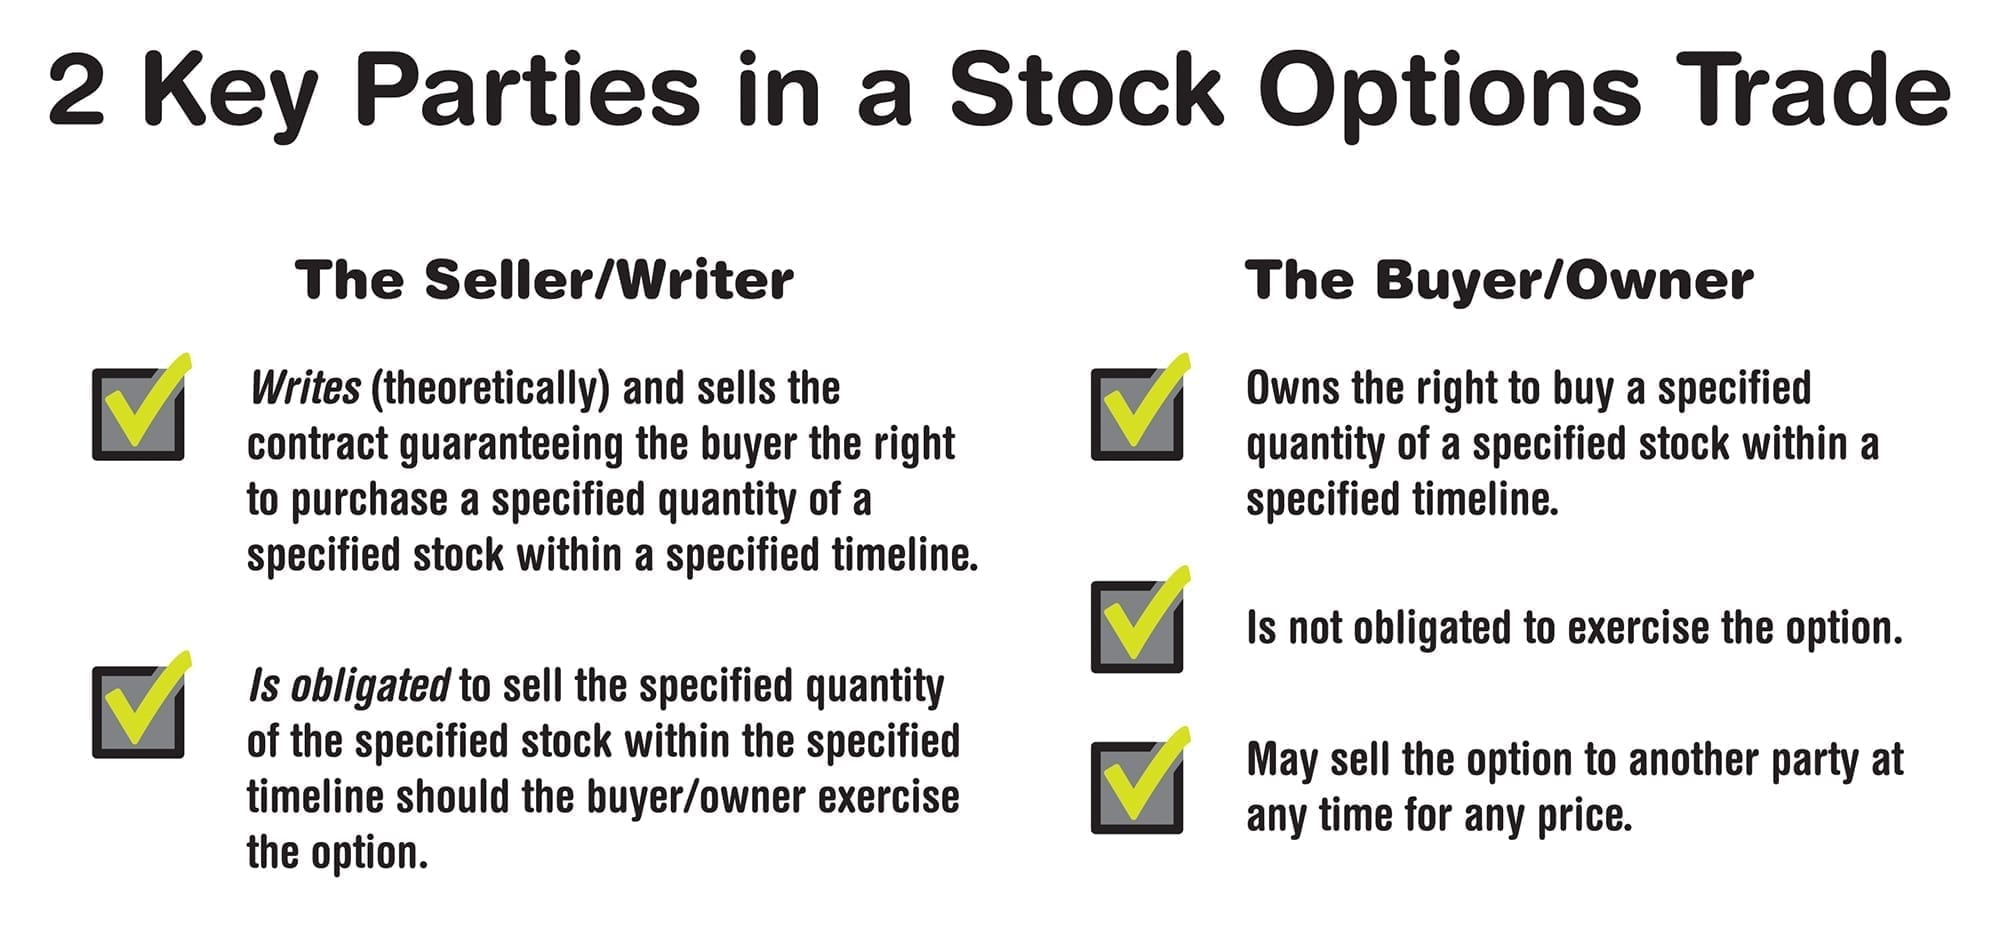 There are two key parties in a stock options trade. The seller sells the right to purchase a specified quantity of stock within a specified timeline. The seller is obligated to sell should the buyer exercise that option. Understanding the relationship between buyer and seller is an important aspect of successful low-risk stock options trading strategies.